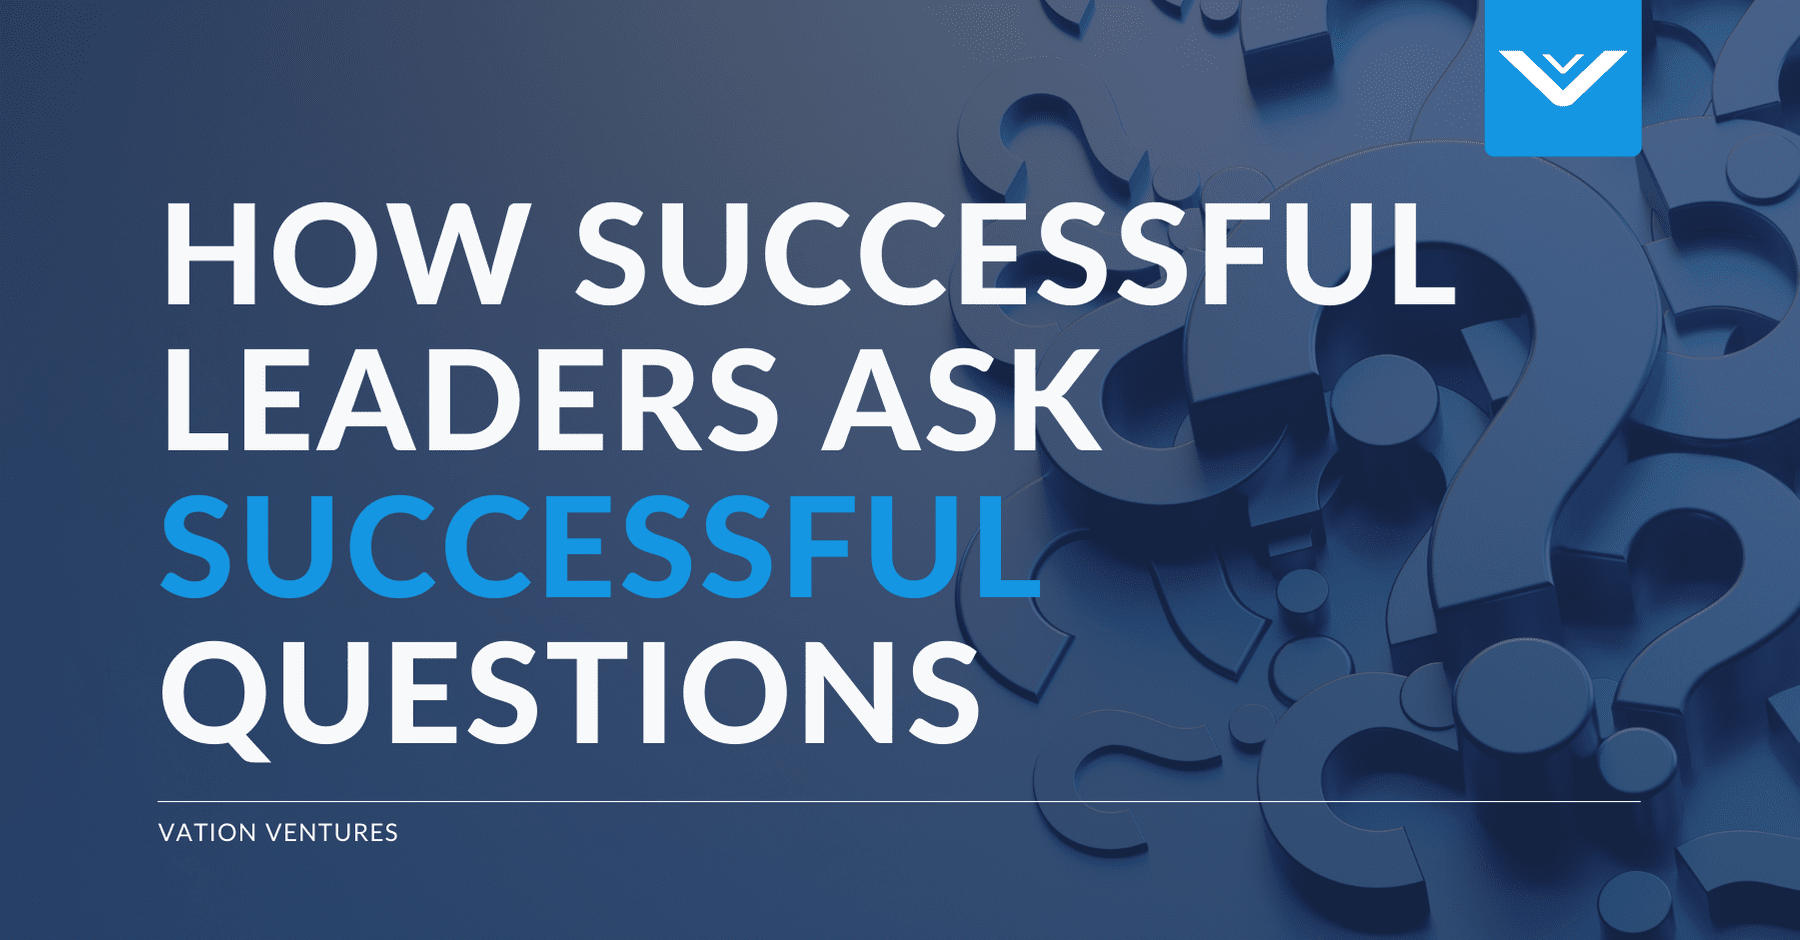 How Successful Leaders Ask Successful Questions